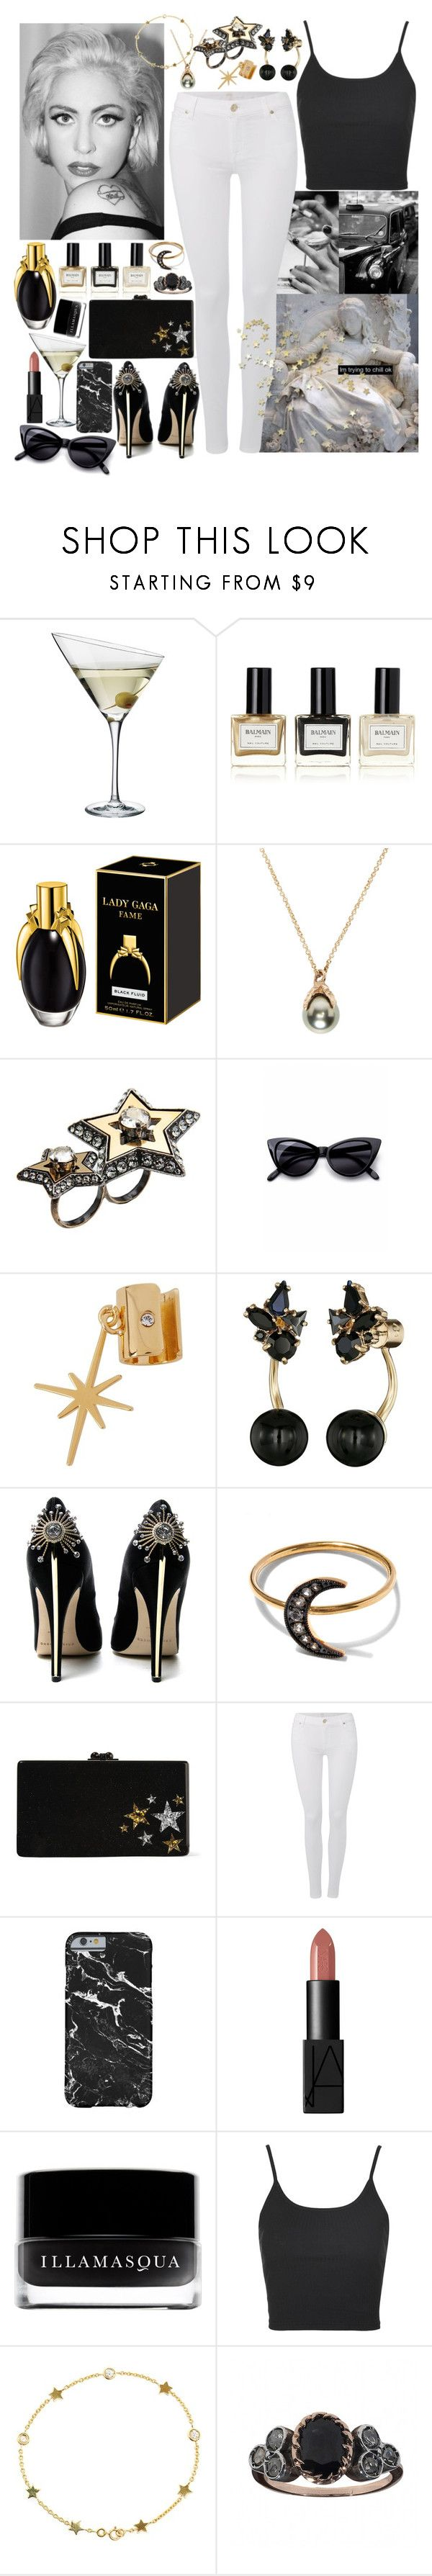 """Marry The Night - Lady Gaga"" by leo8august ❤ liked on Polyvore featuring Eva Solo, Balmain, Pearls Before Swine, Lanvin, Retrò, Maria Francesca Pepe, Kate Spade, Brian Atwood, Andrea Fohrman and Edie Parker"